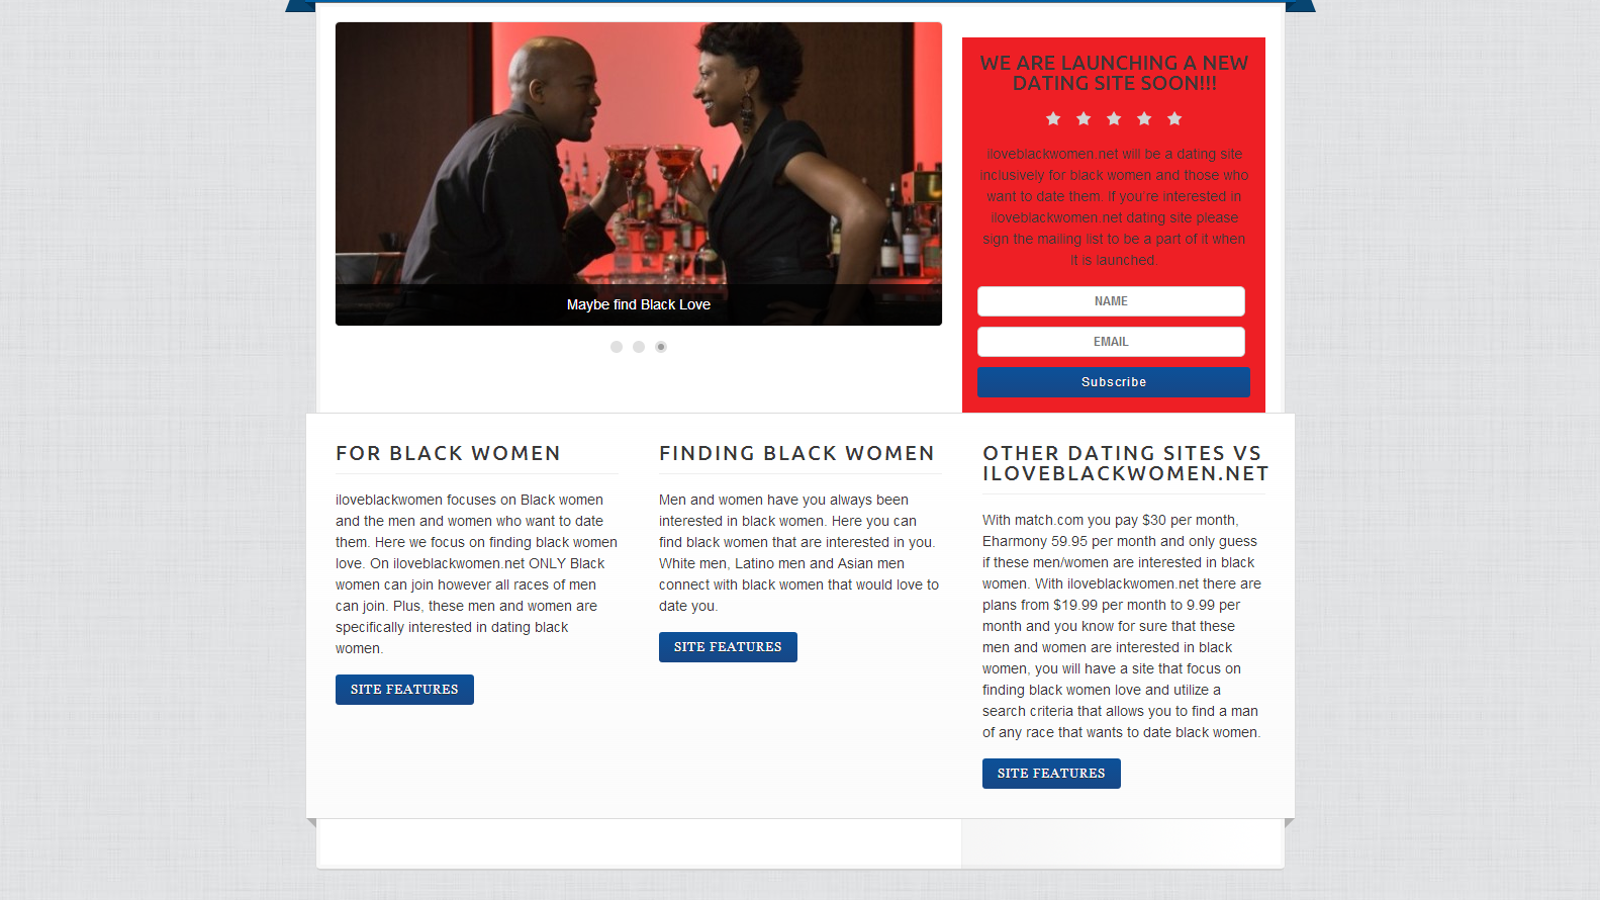 horner black women dating site Join elitesingles today and meet educated, professional black singles looking for  a committed  meeting black singles: join a dating site with a difference.